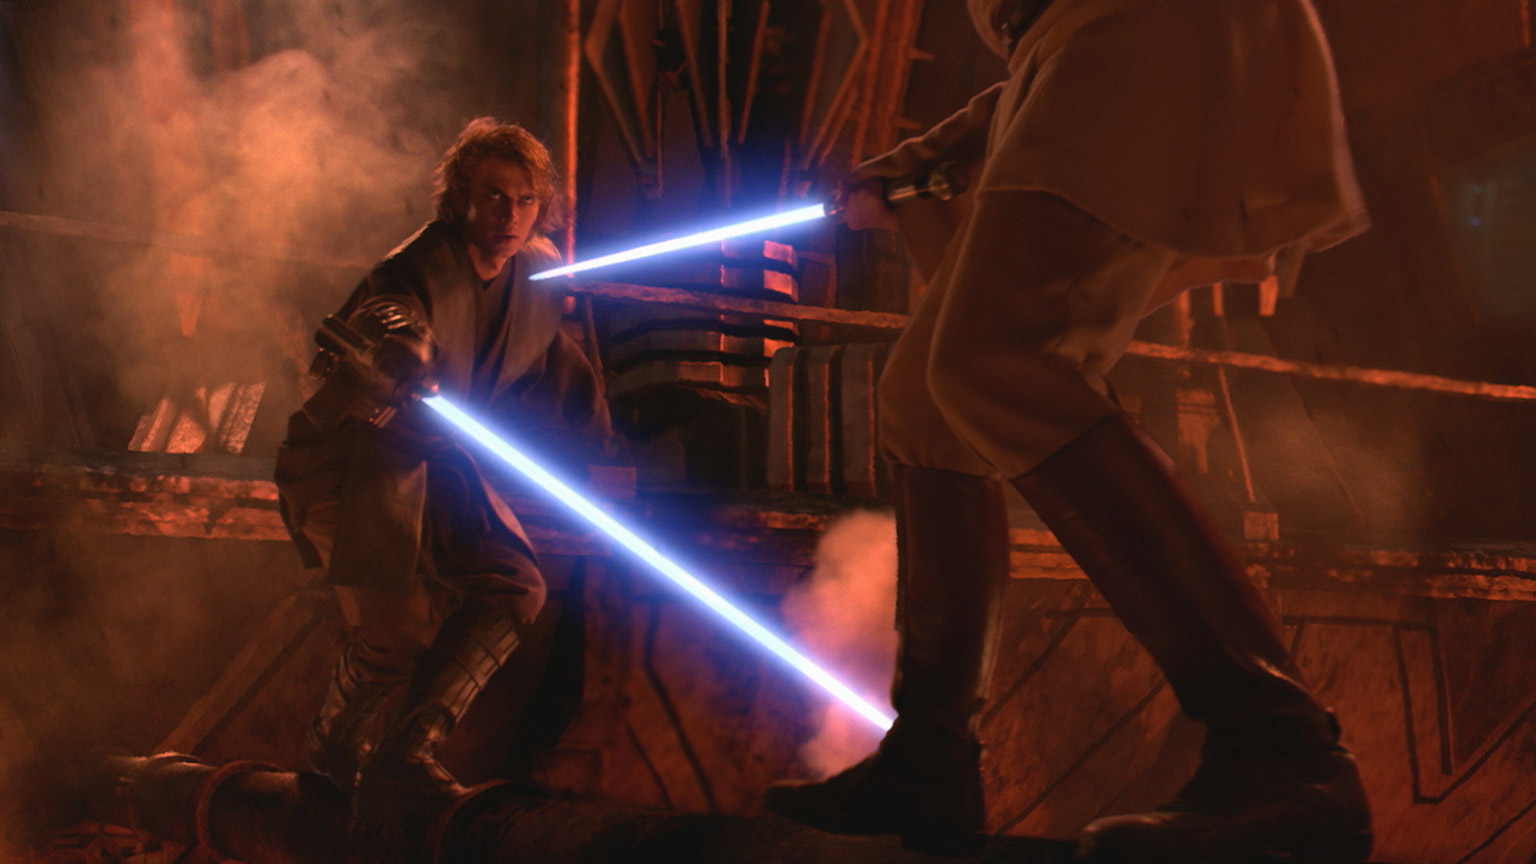 Anakin and Obi-Wan face off during their duel on Mustafar.